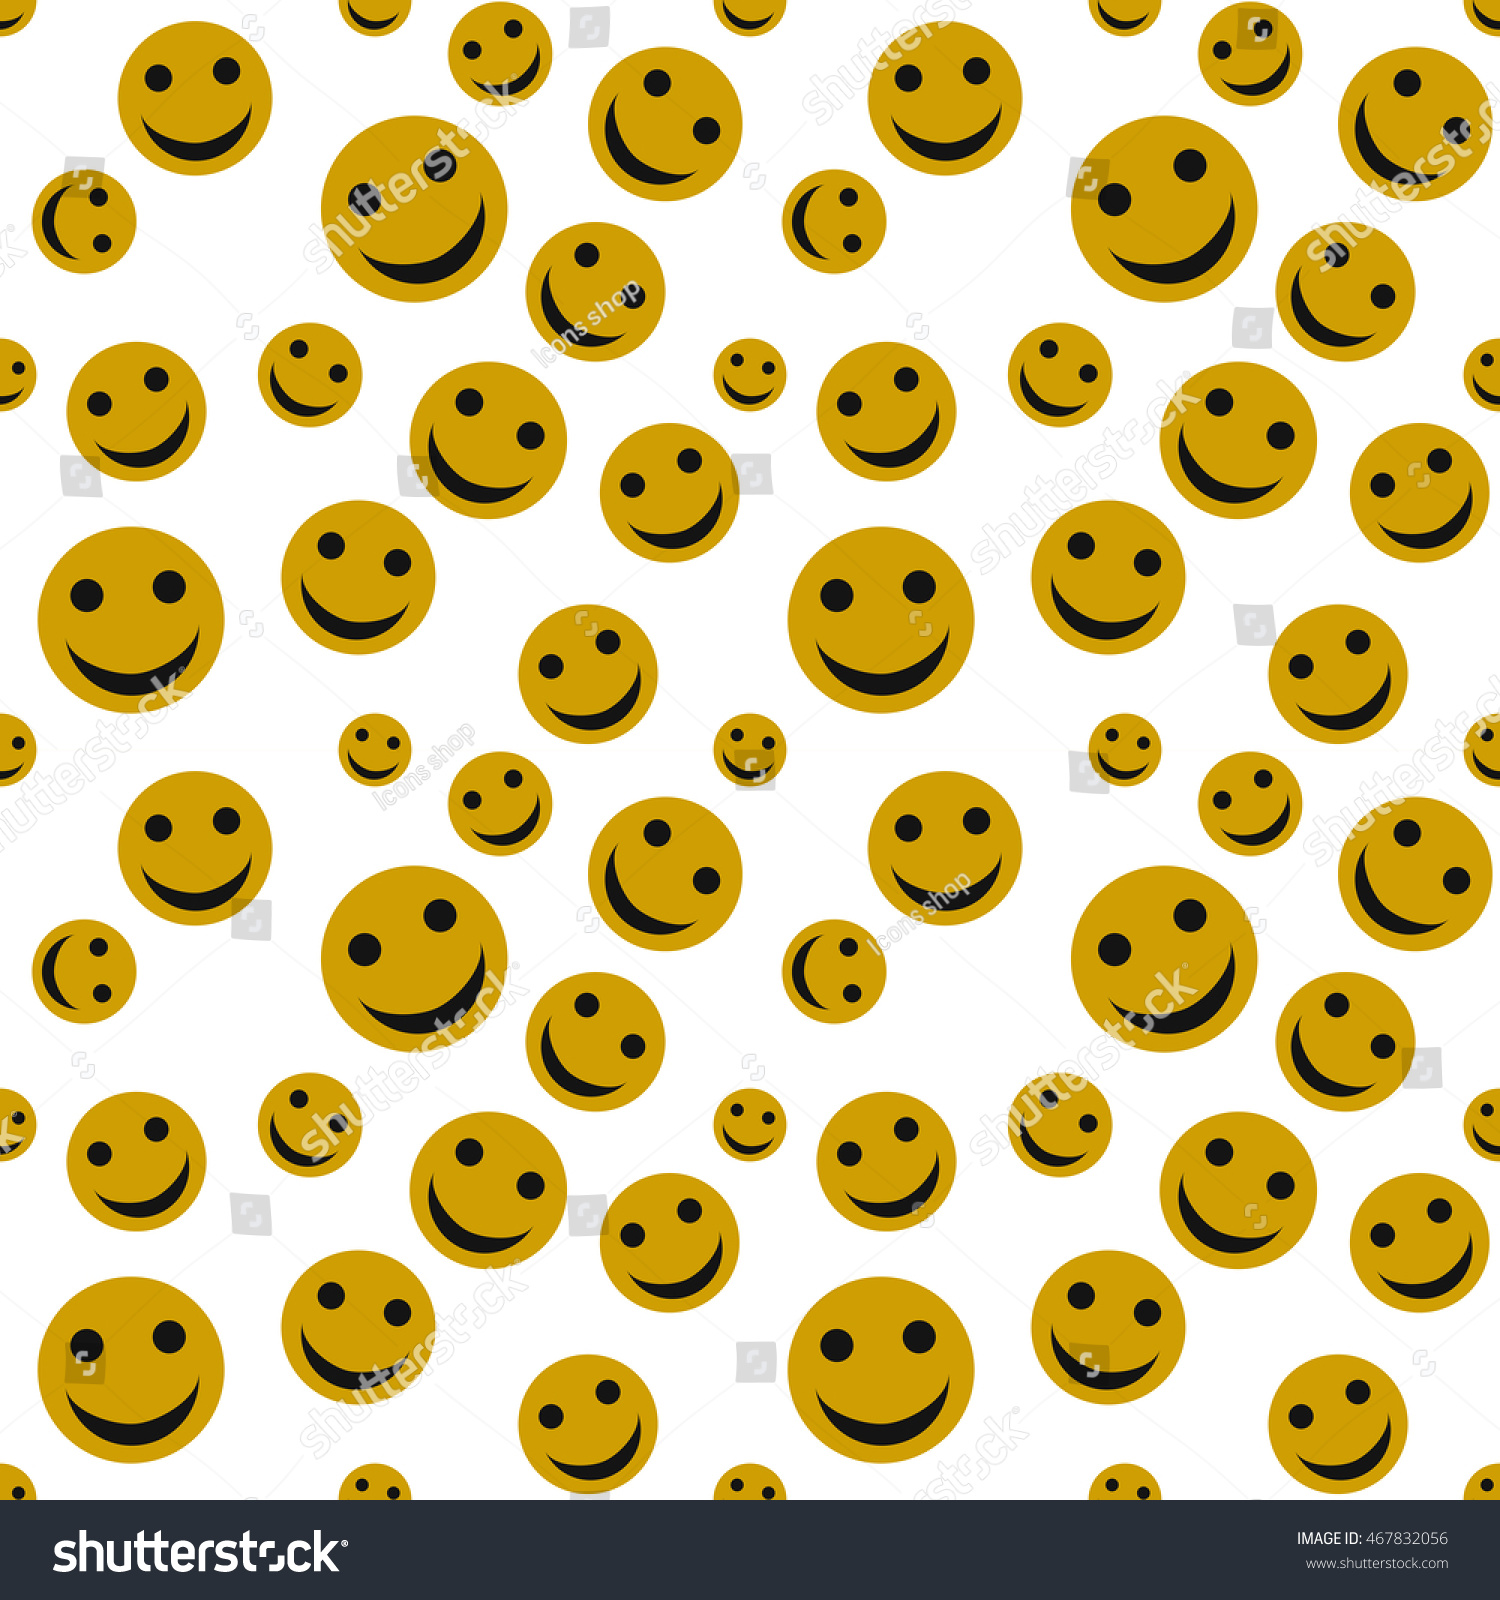 Cute smiley face happy face seamless stock vector 467832056 cute smiley face happy face seamless pattern background voltagebd Gallery